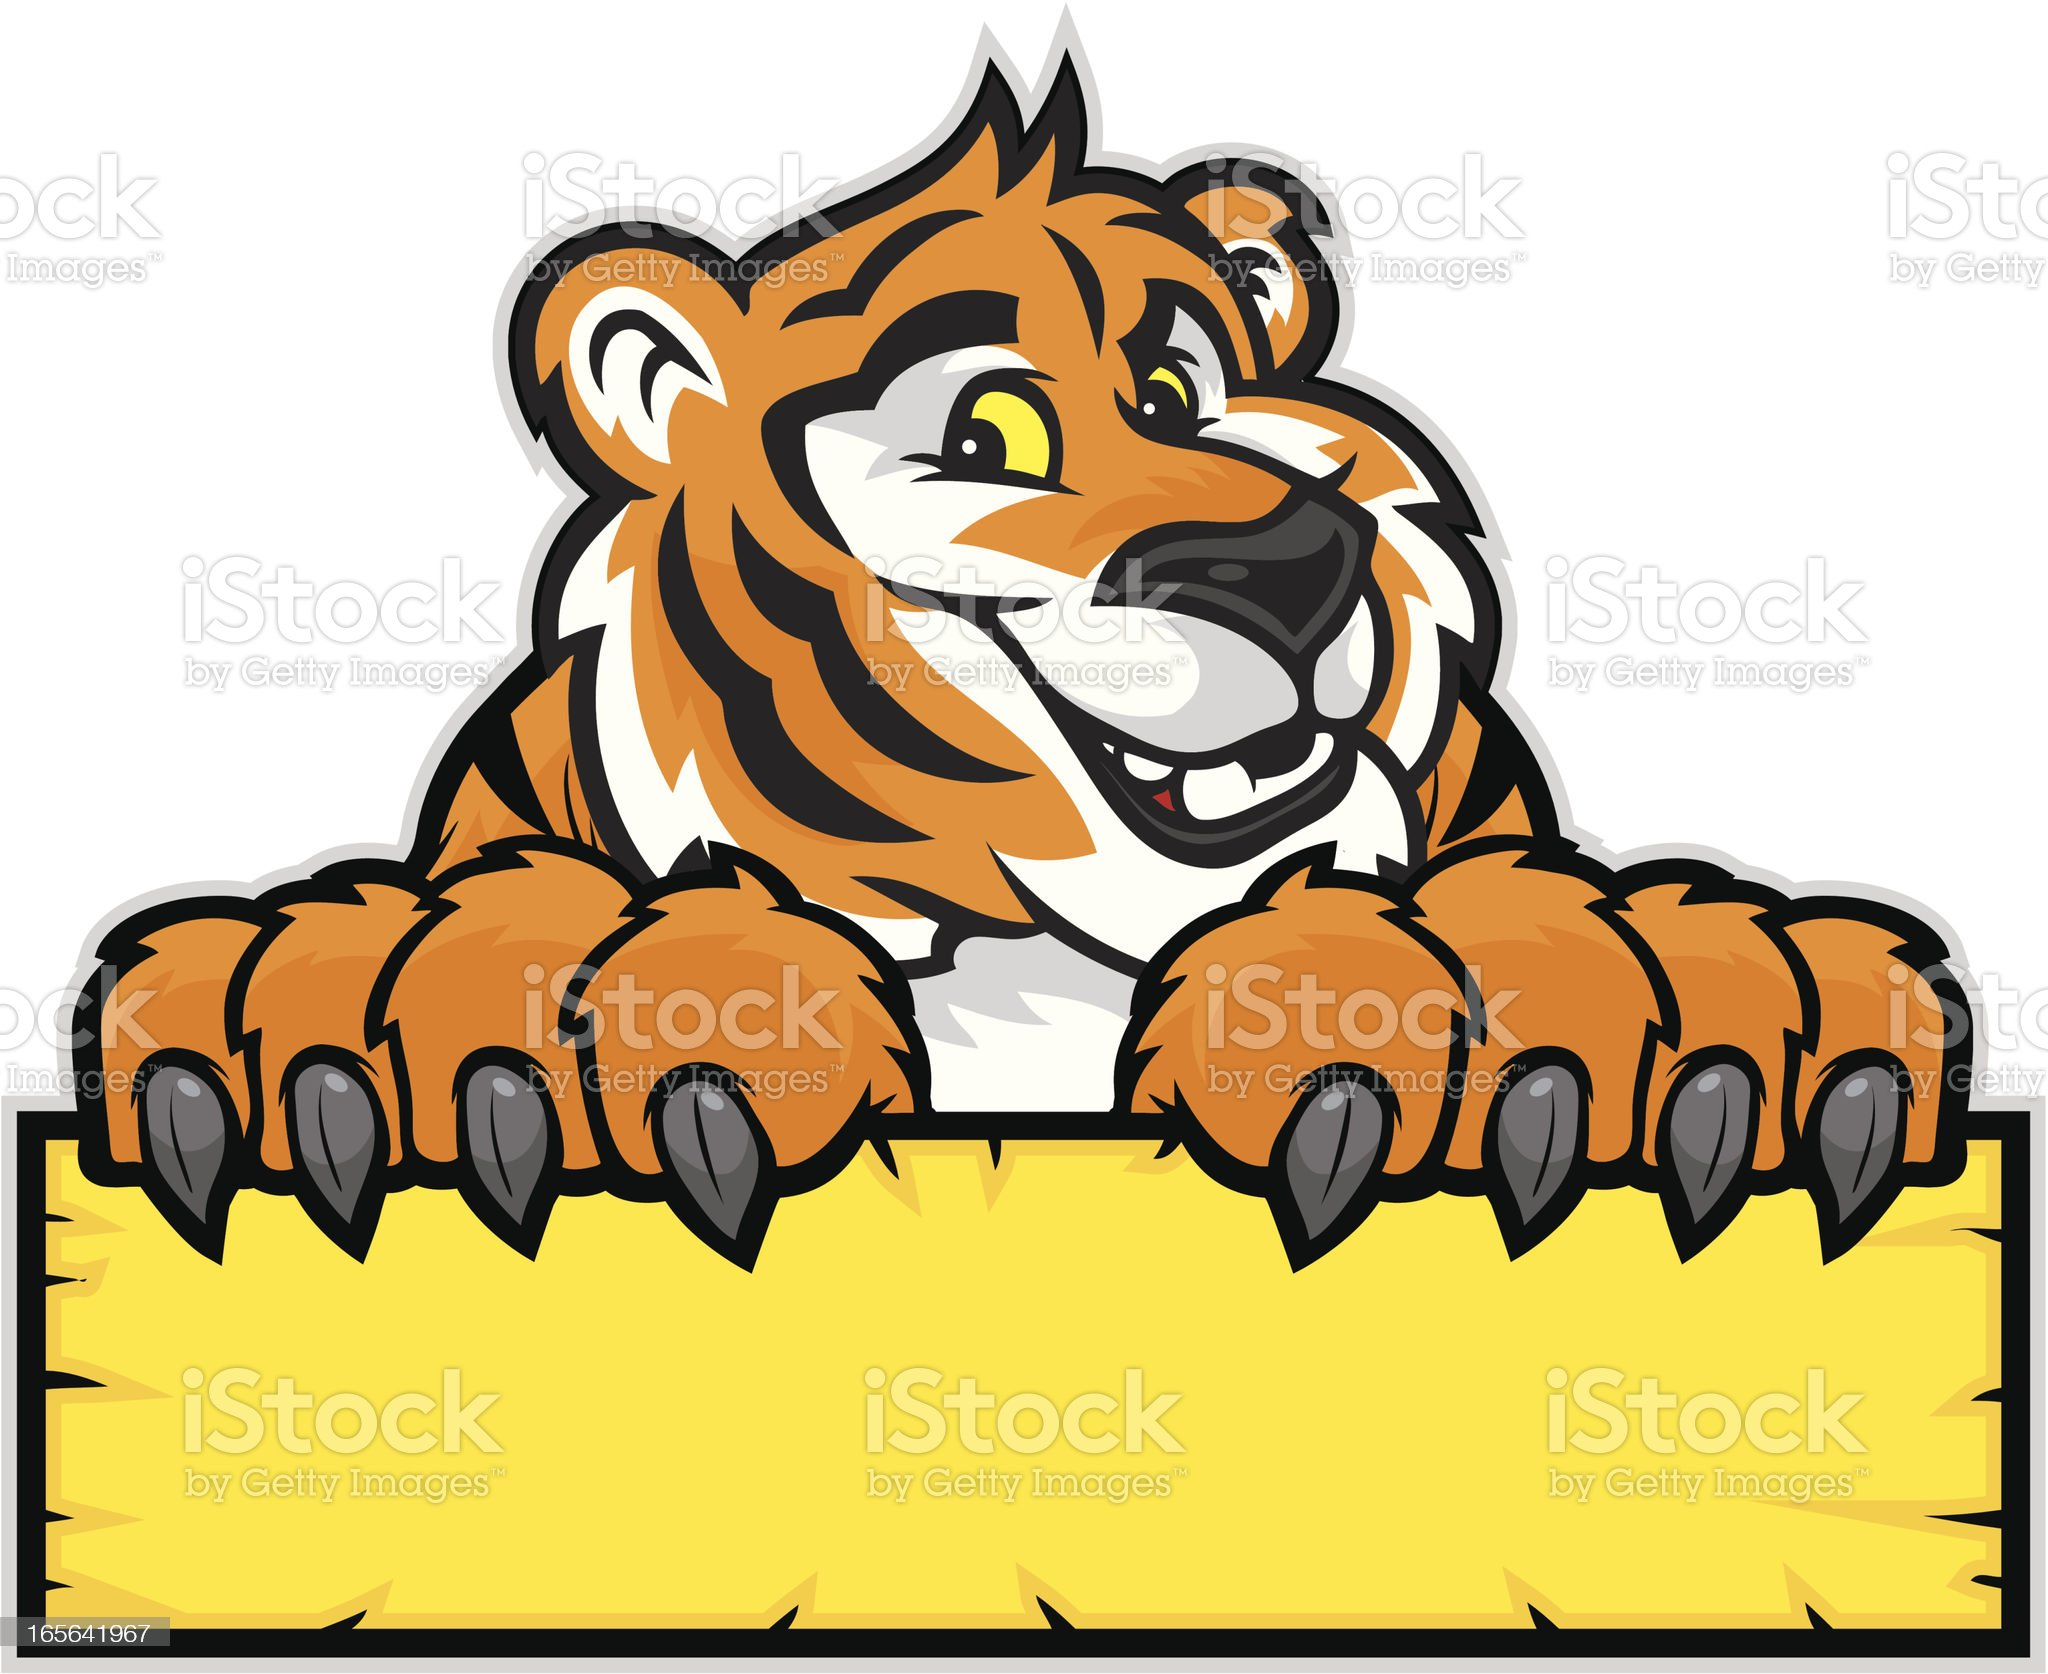 Tiger Mascot Sign royalty-free stock vector art